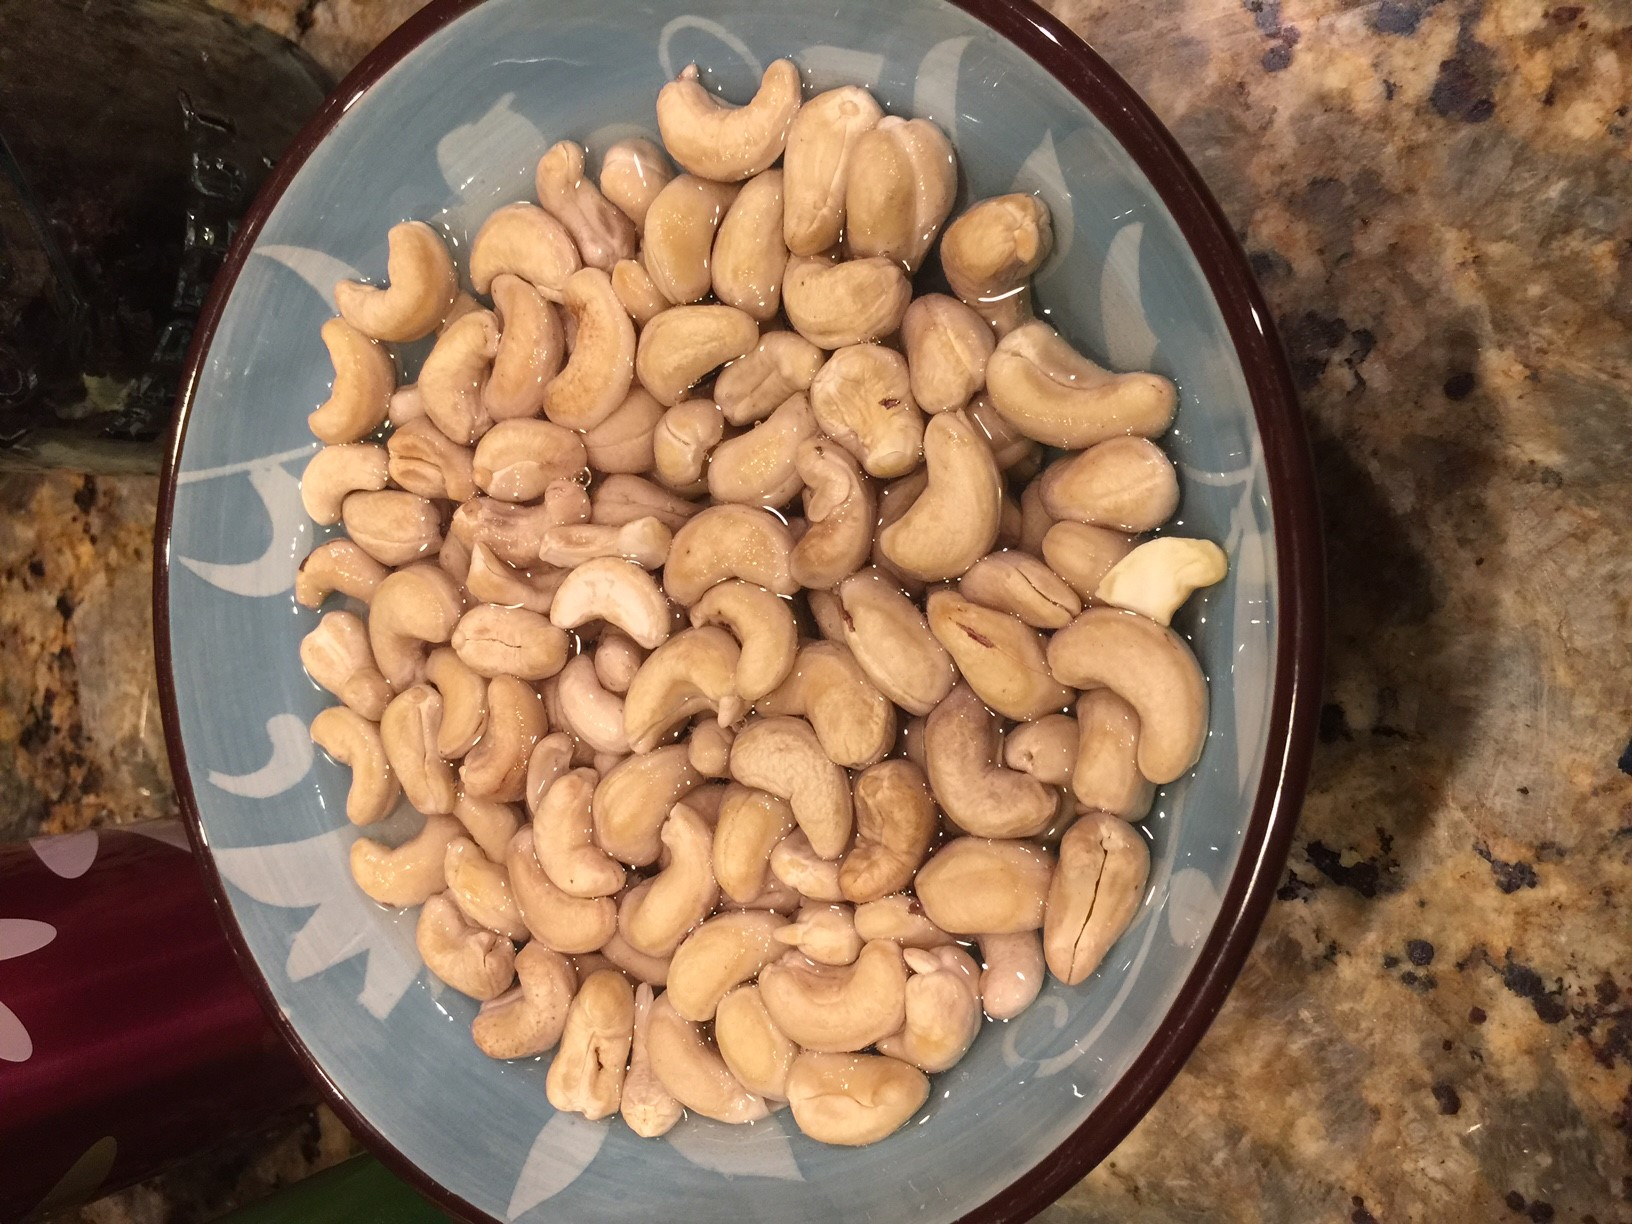 Soaking cashews before making fruit and nut bars (cashews, figs, dried cherries without sulfites, and dates).